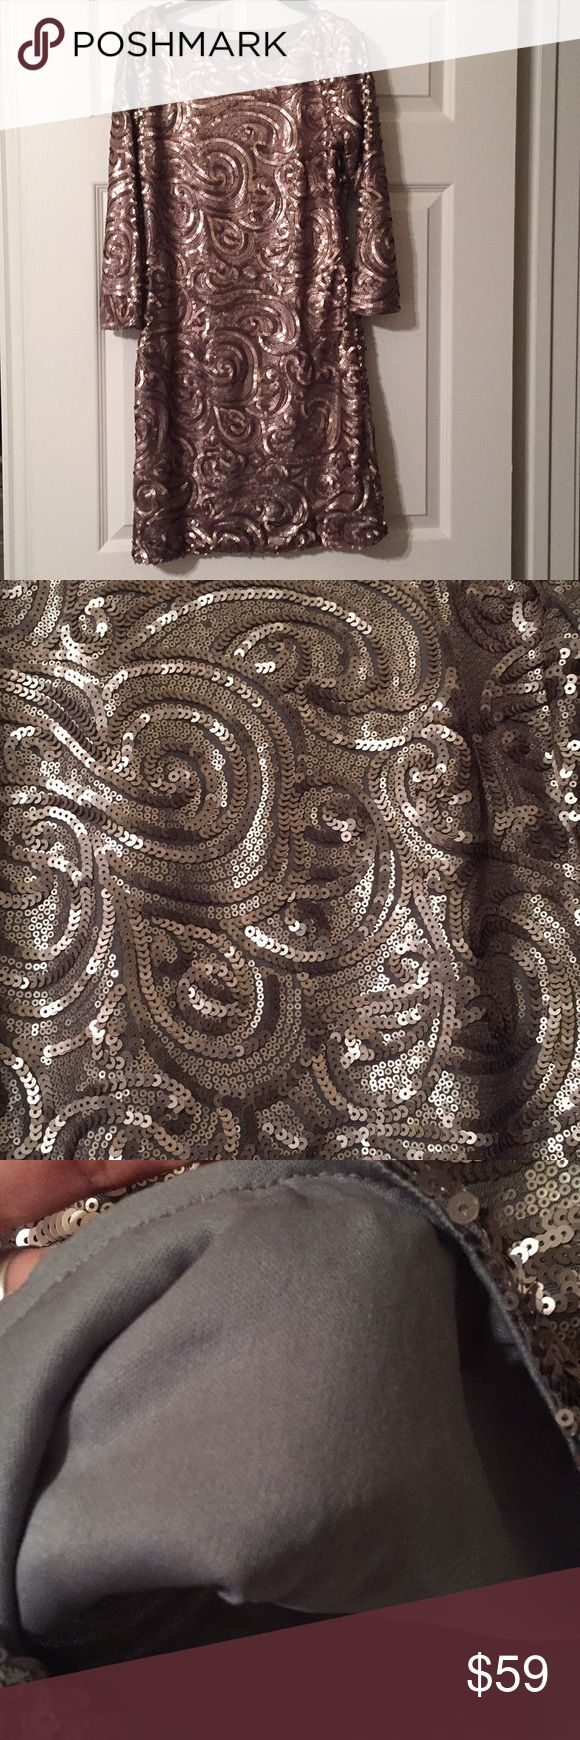 New Year's Eve sequin dress size M by SugarLips Champagne brown metal sequin dress by SugarLips in  Multi tone swirls size medium Worn once for a wedding Will fit someone who wears a small but won't be as form fitting  Perfect New Year's Eve dress! Price firm Sugarlips Dresses